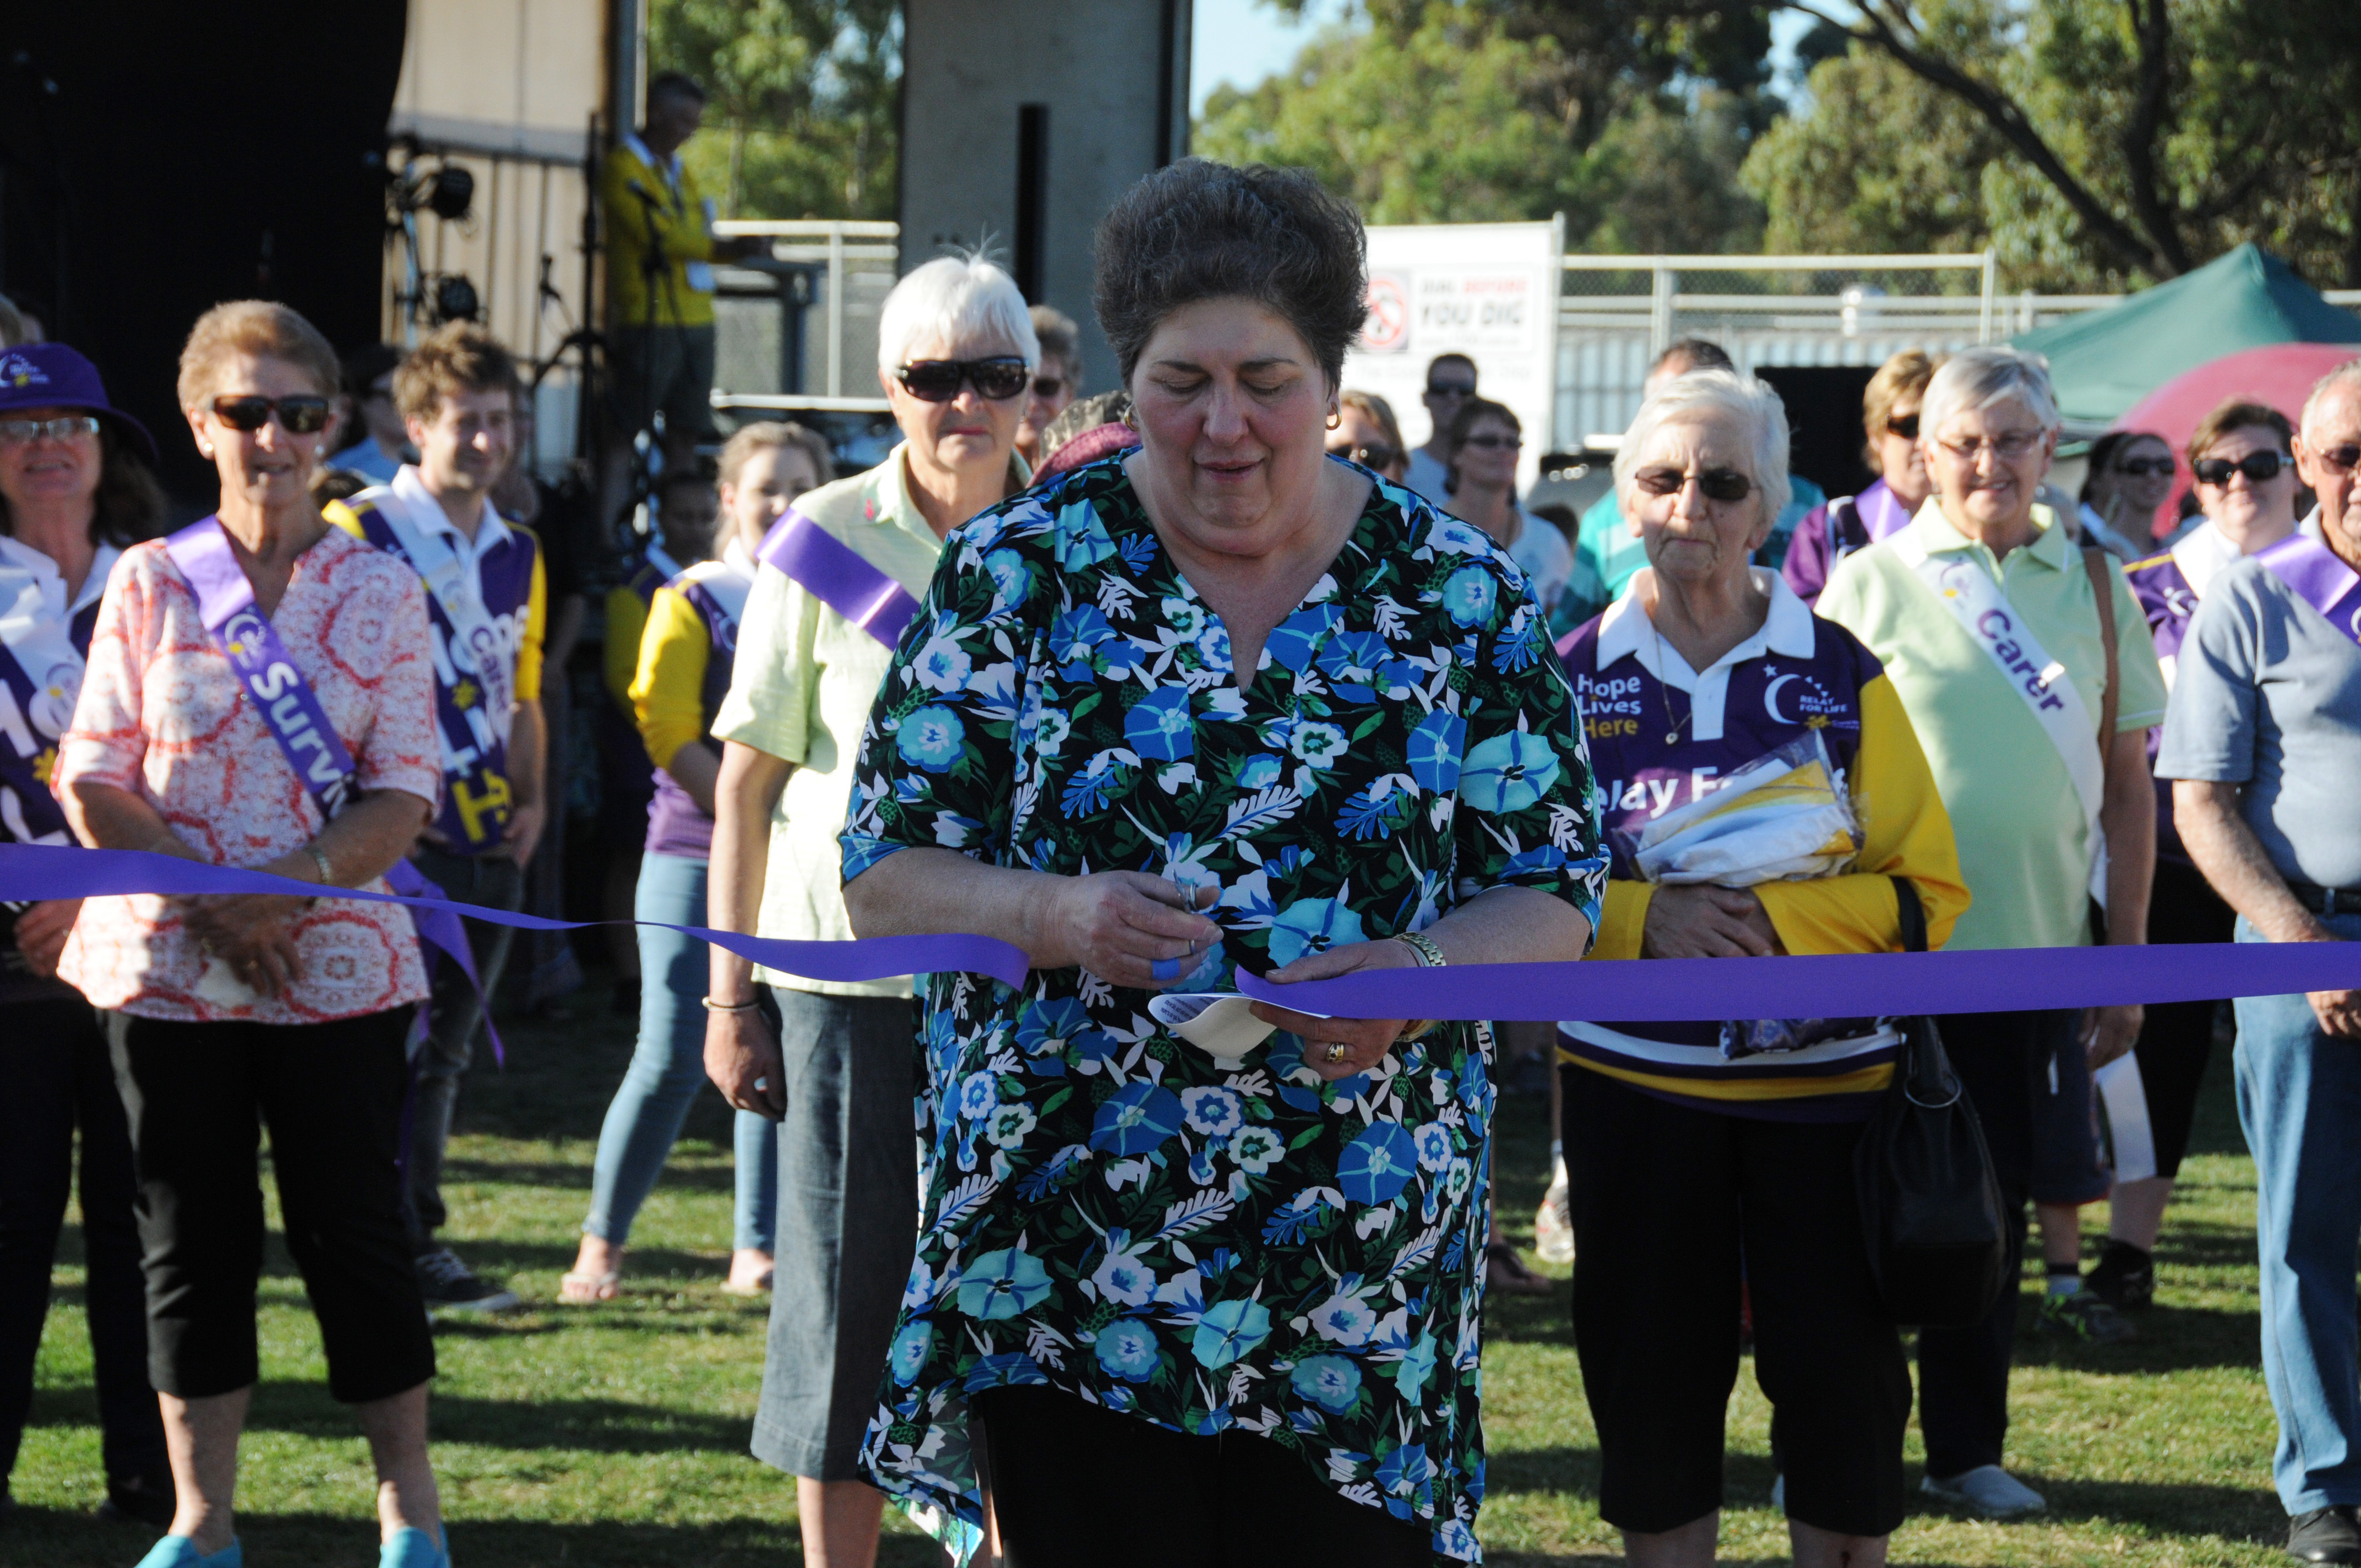 Image - Horsham and District Relay for Life, 170317. Relay stalwart Maria Marchesini recited the Relay for Life oath and cut the ribbon to offically begin this year